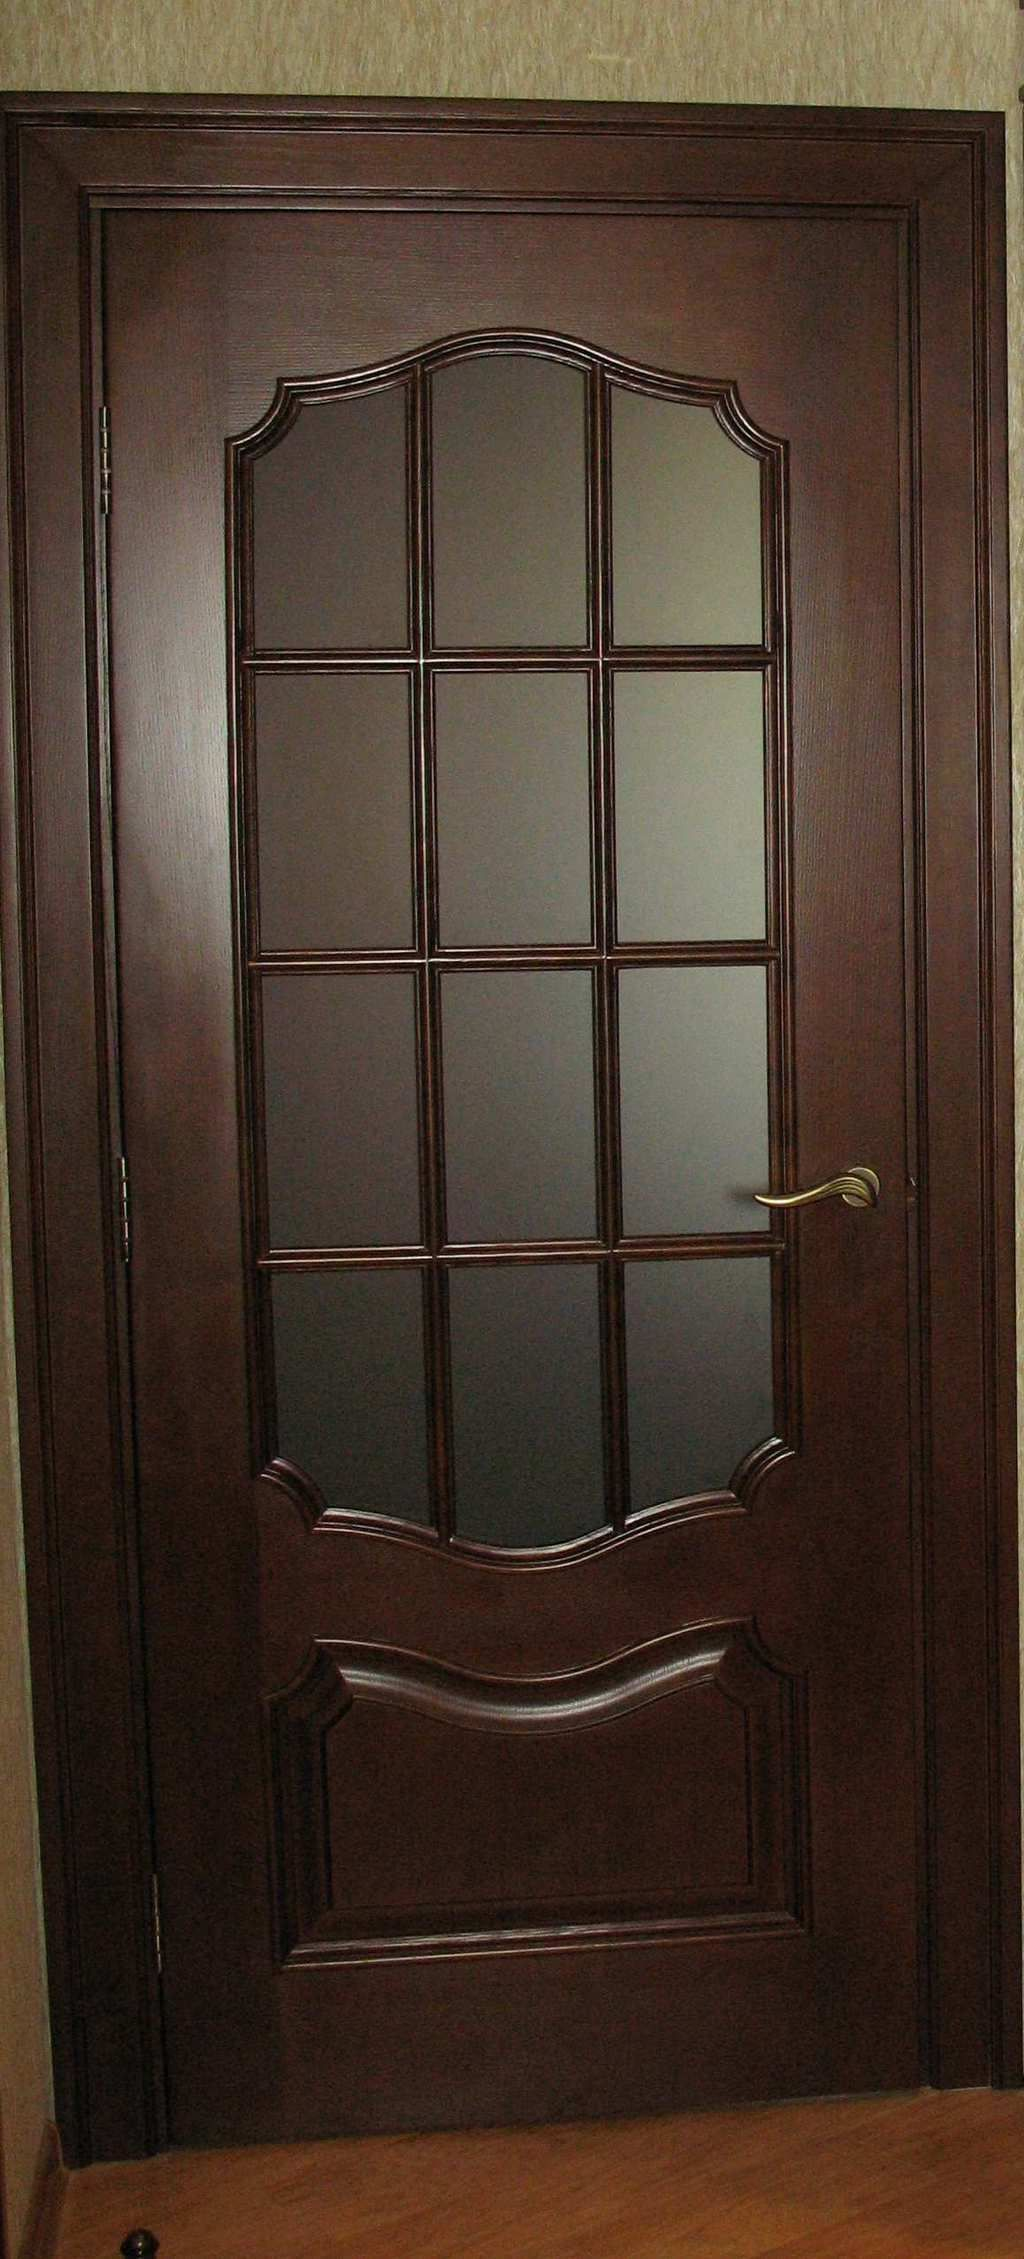 Wooden Internal Doors With: Luxury Interior Doors In Classic Antique Baroque Style